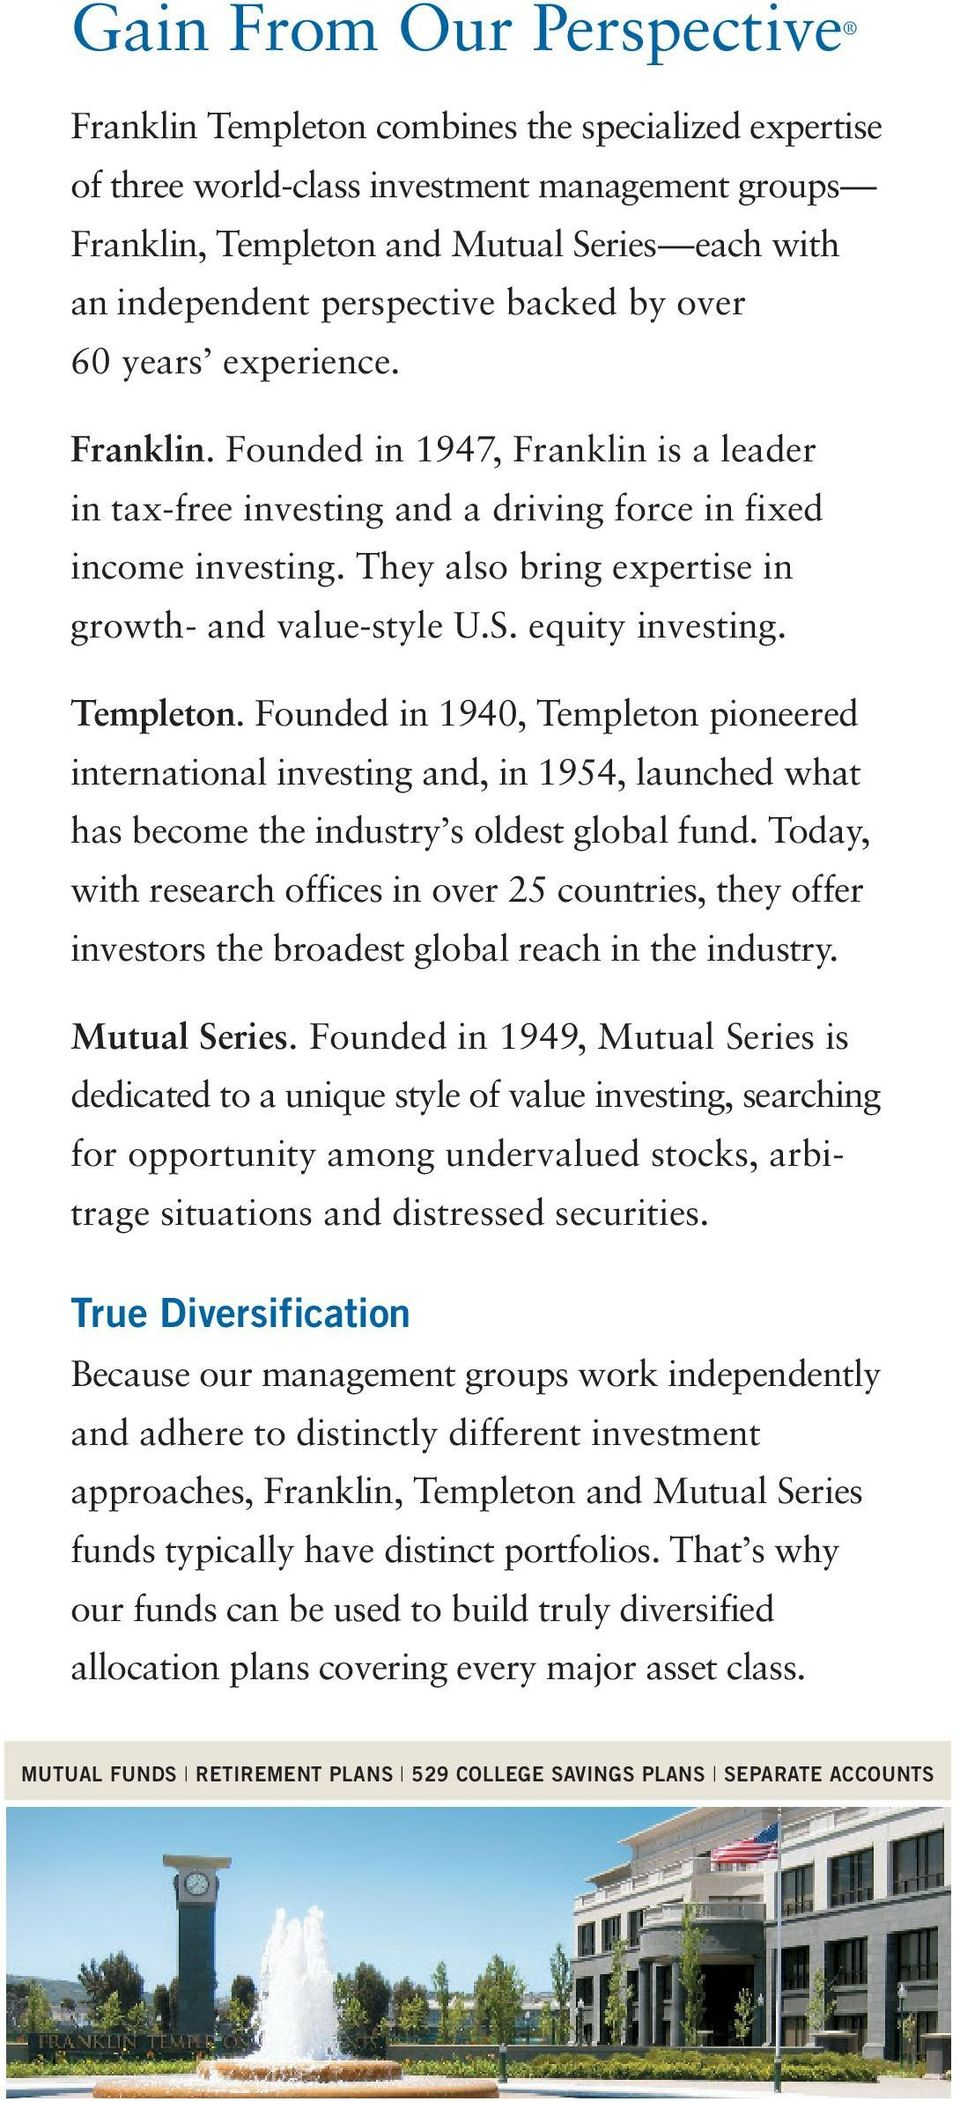 They also bring expertise in growth- and value-style U.S. equity investing. Templeton.